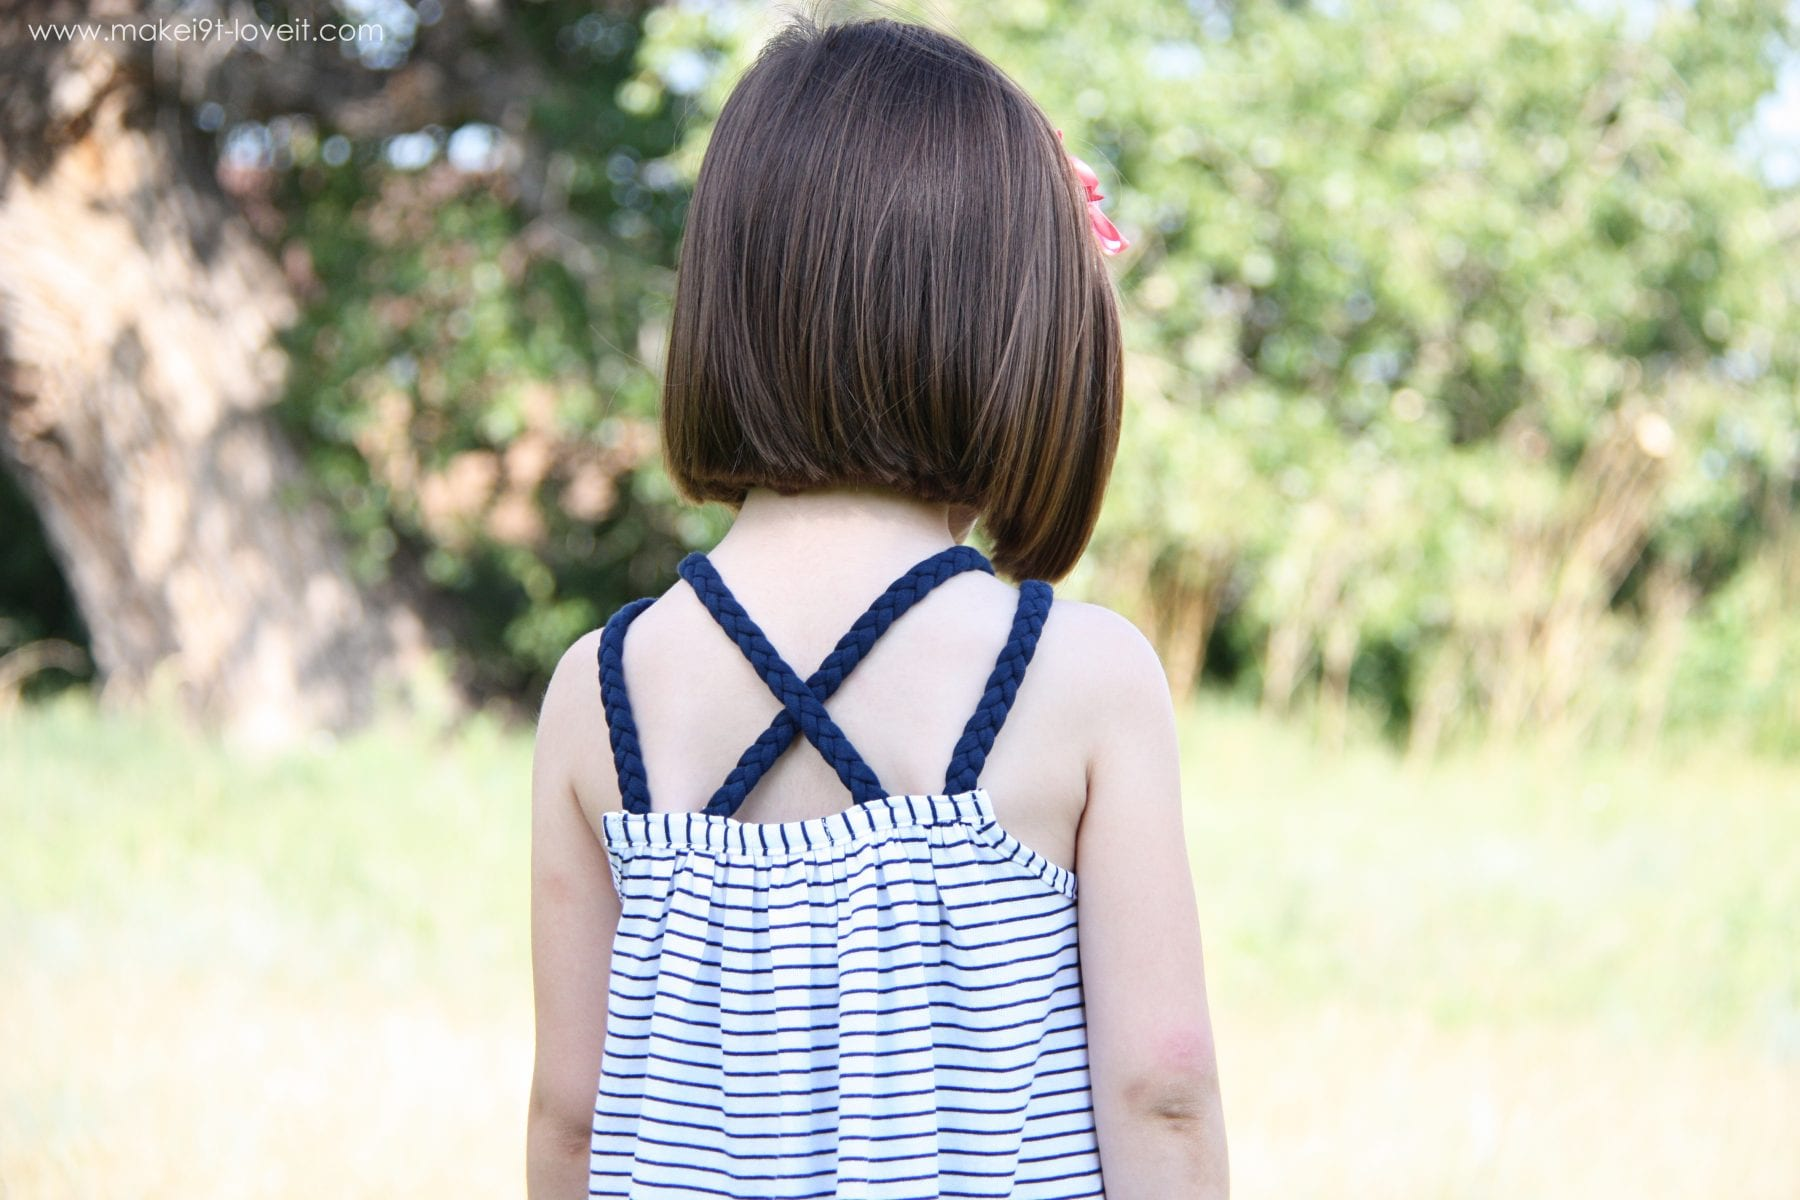 Re-purposing: Tshirt into Dress (or Top) with Braided Straps